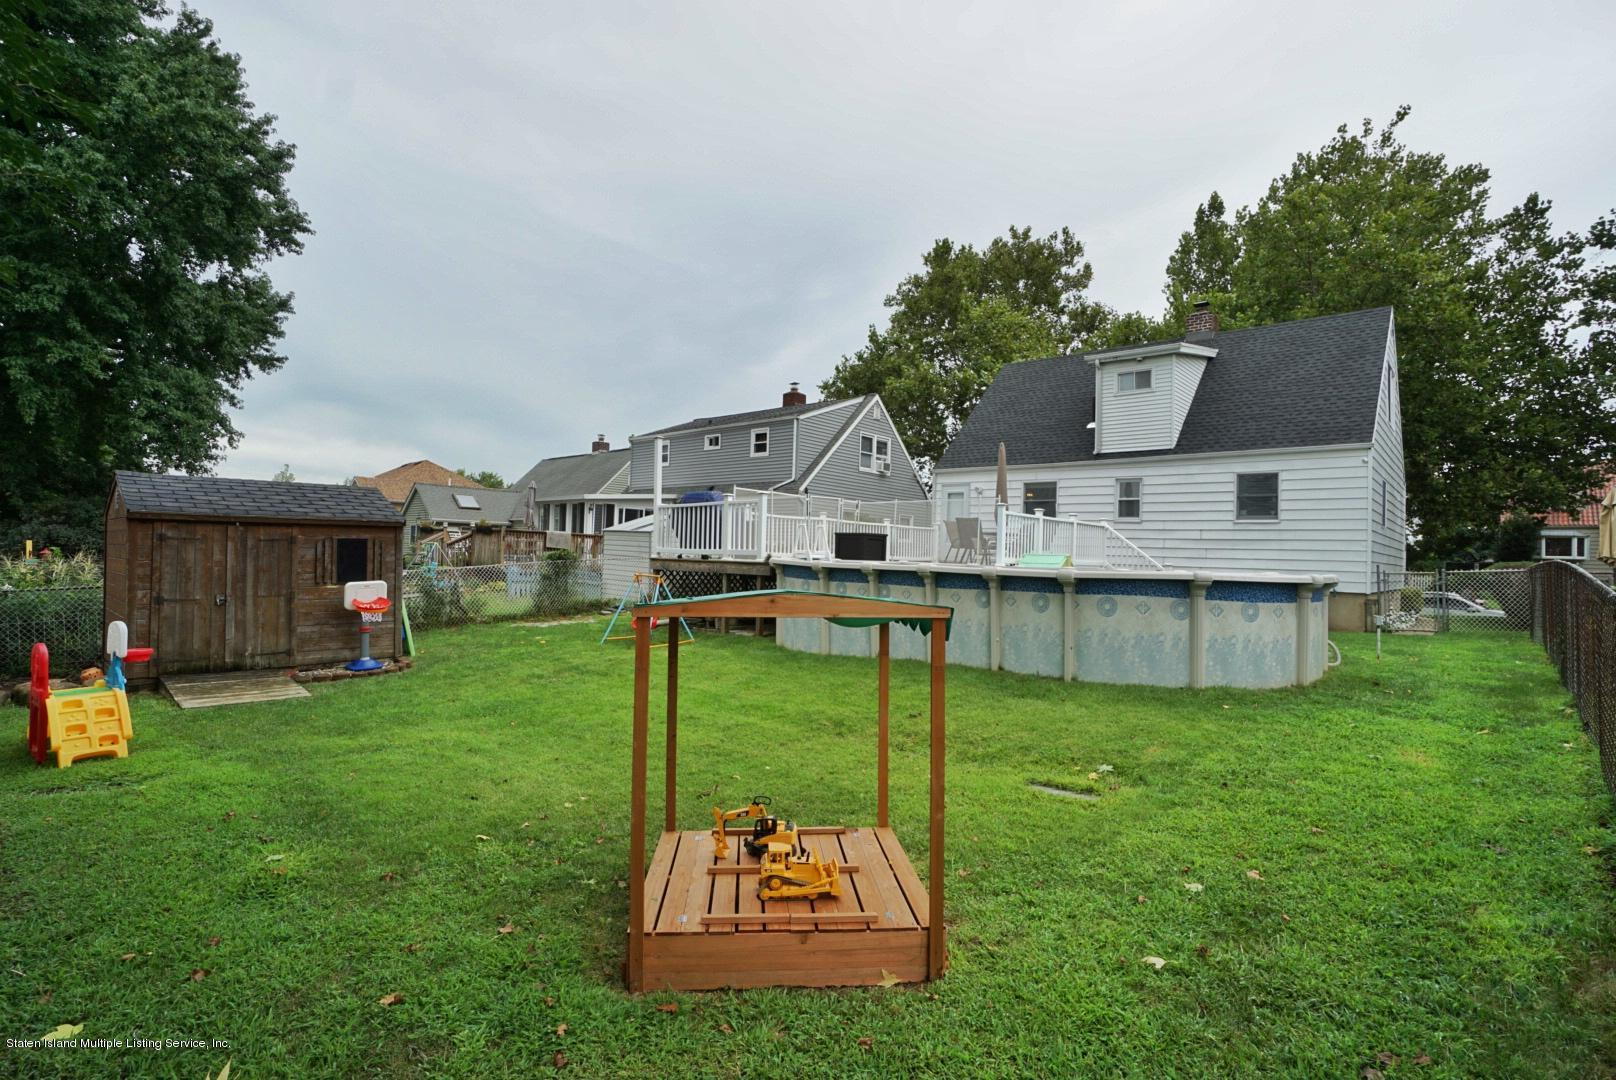 Single Family - Detached 228 Fanning Street  Staten Island, NY 10314, MLS-1131767-41